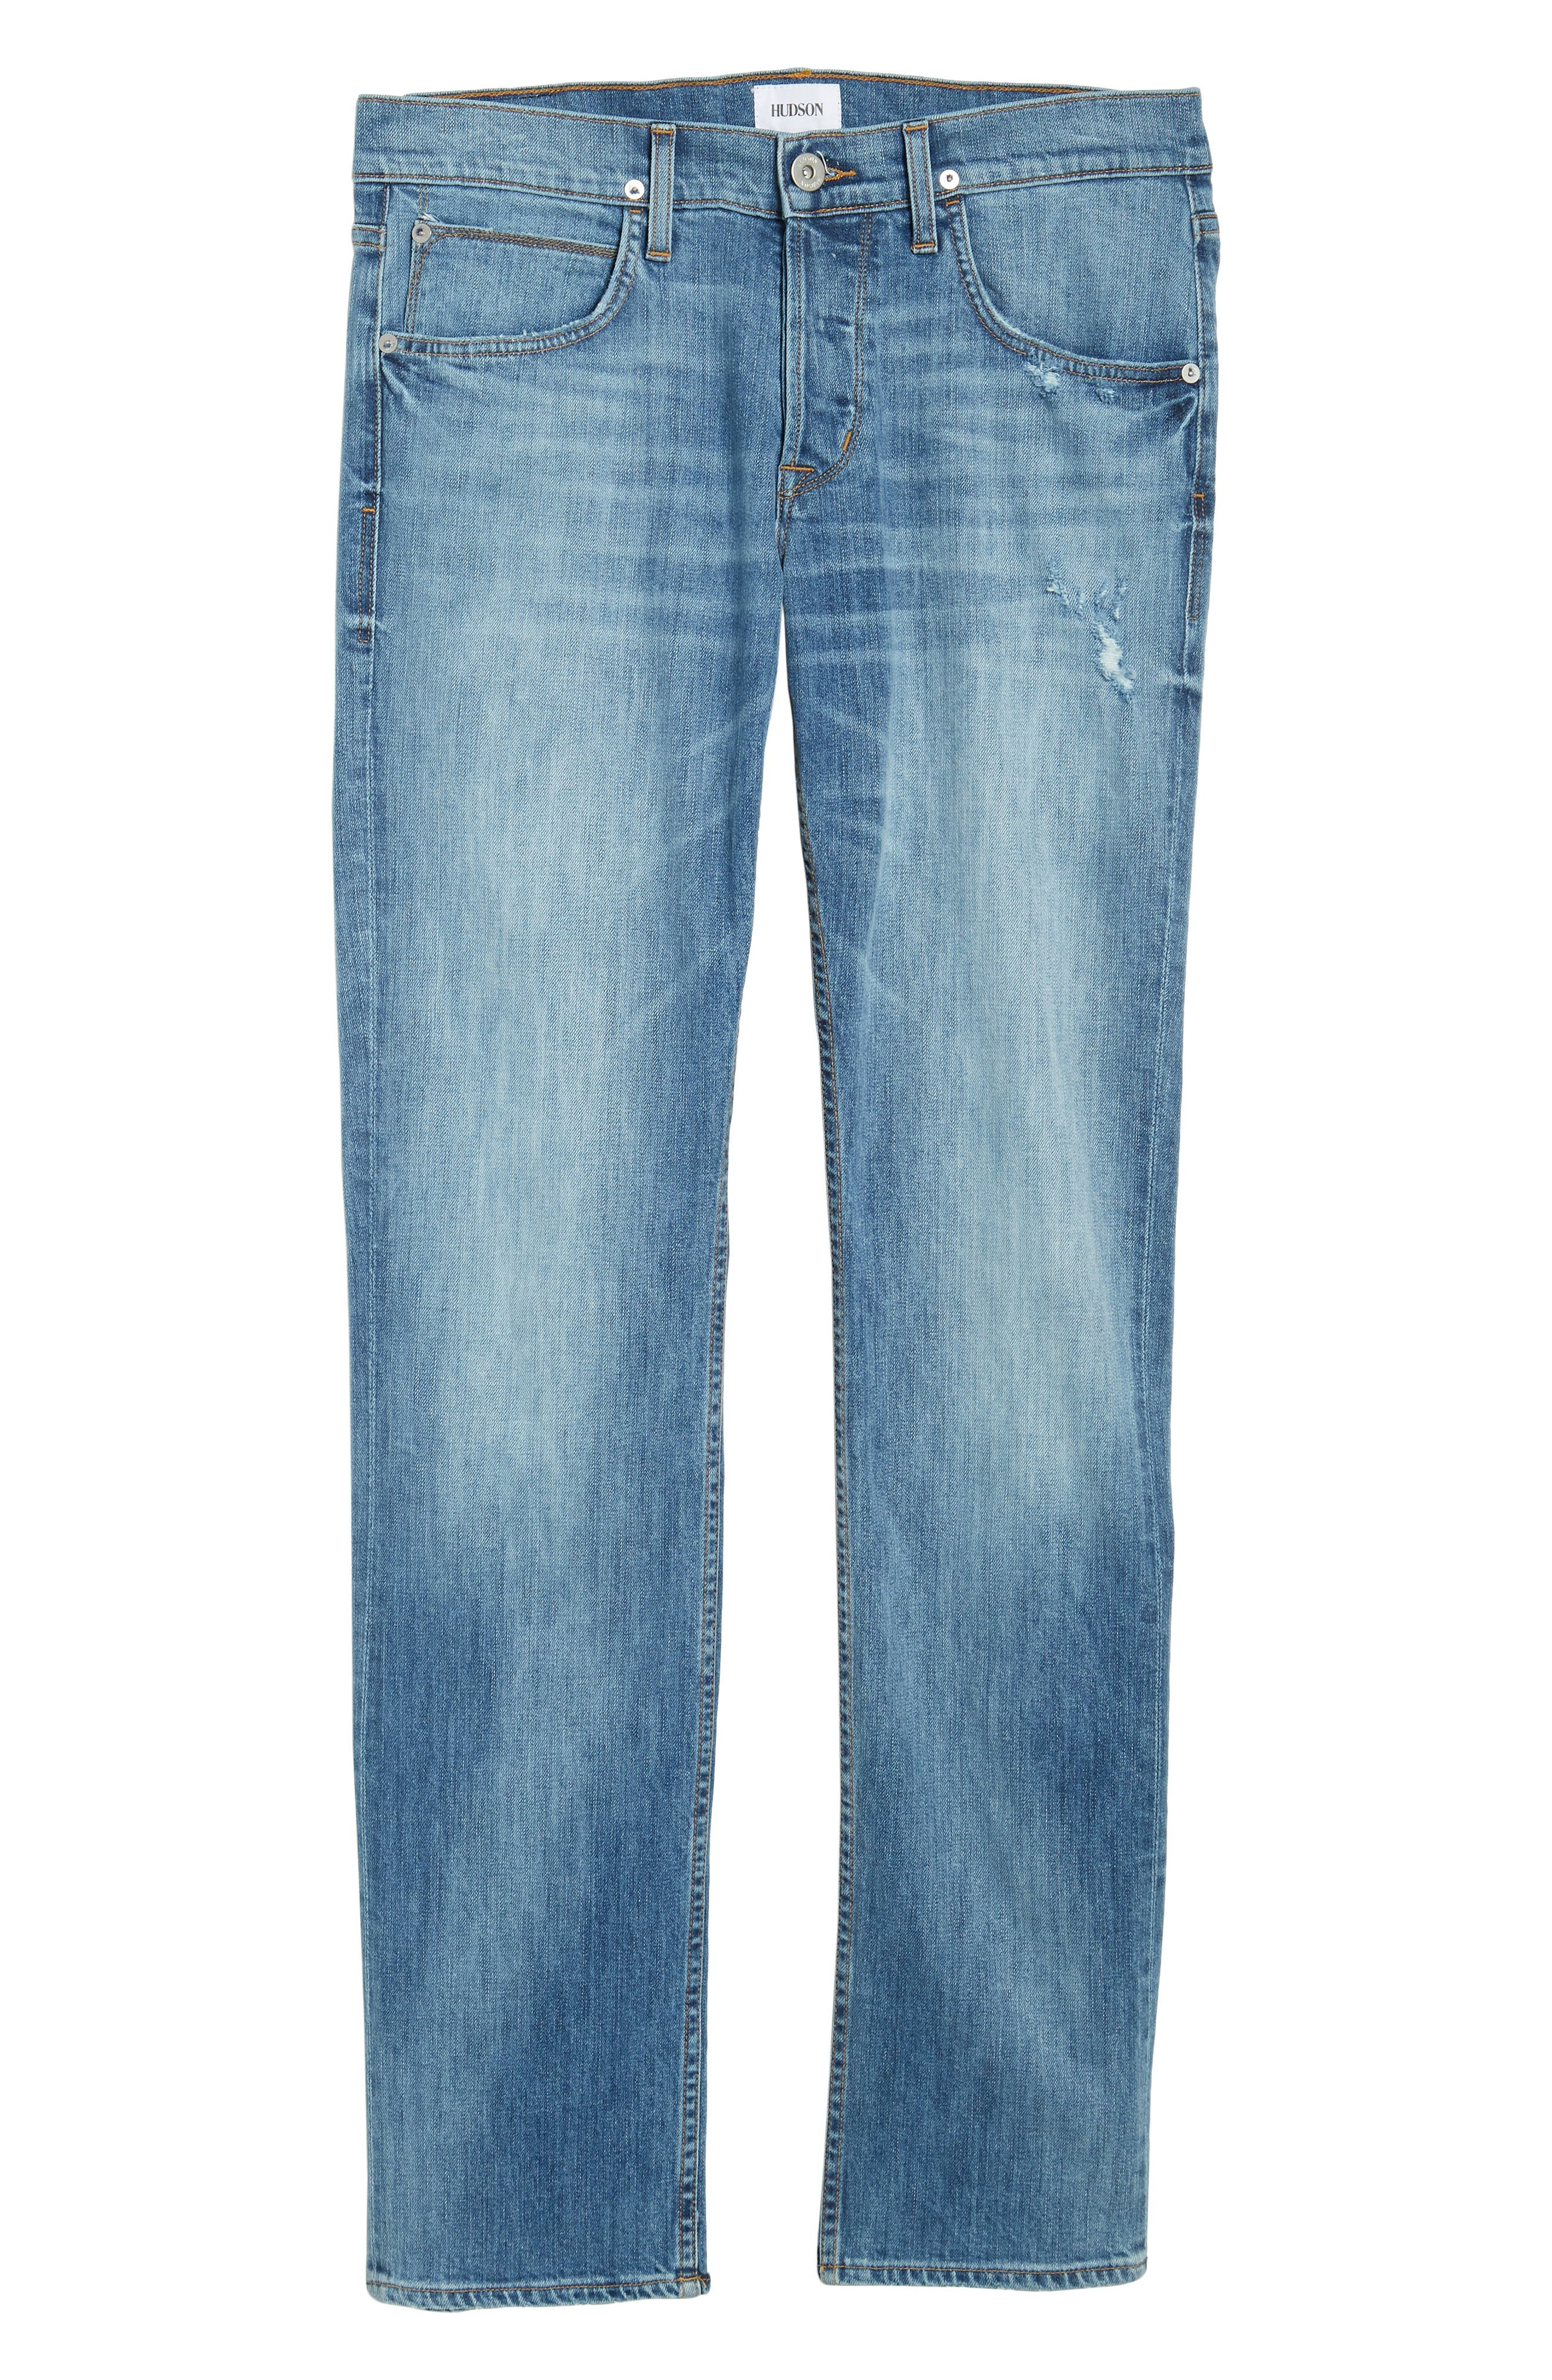 Byron Slim Straight Fit Jeans,                             Alternate thumbnail 6, color,                             425